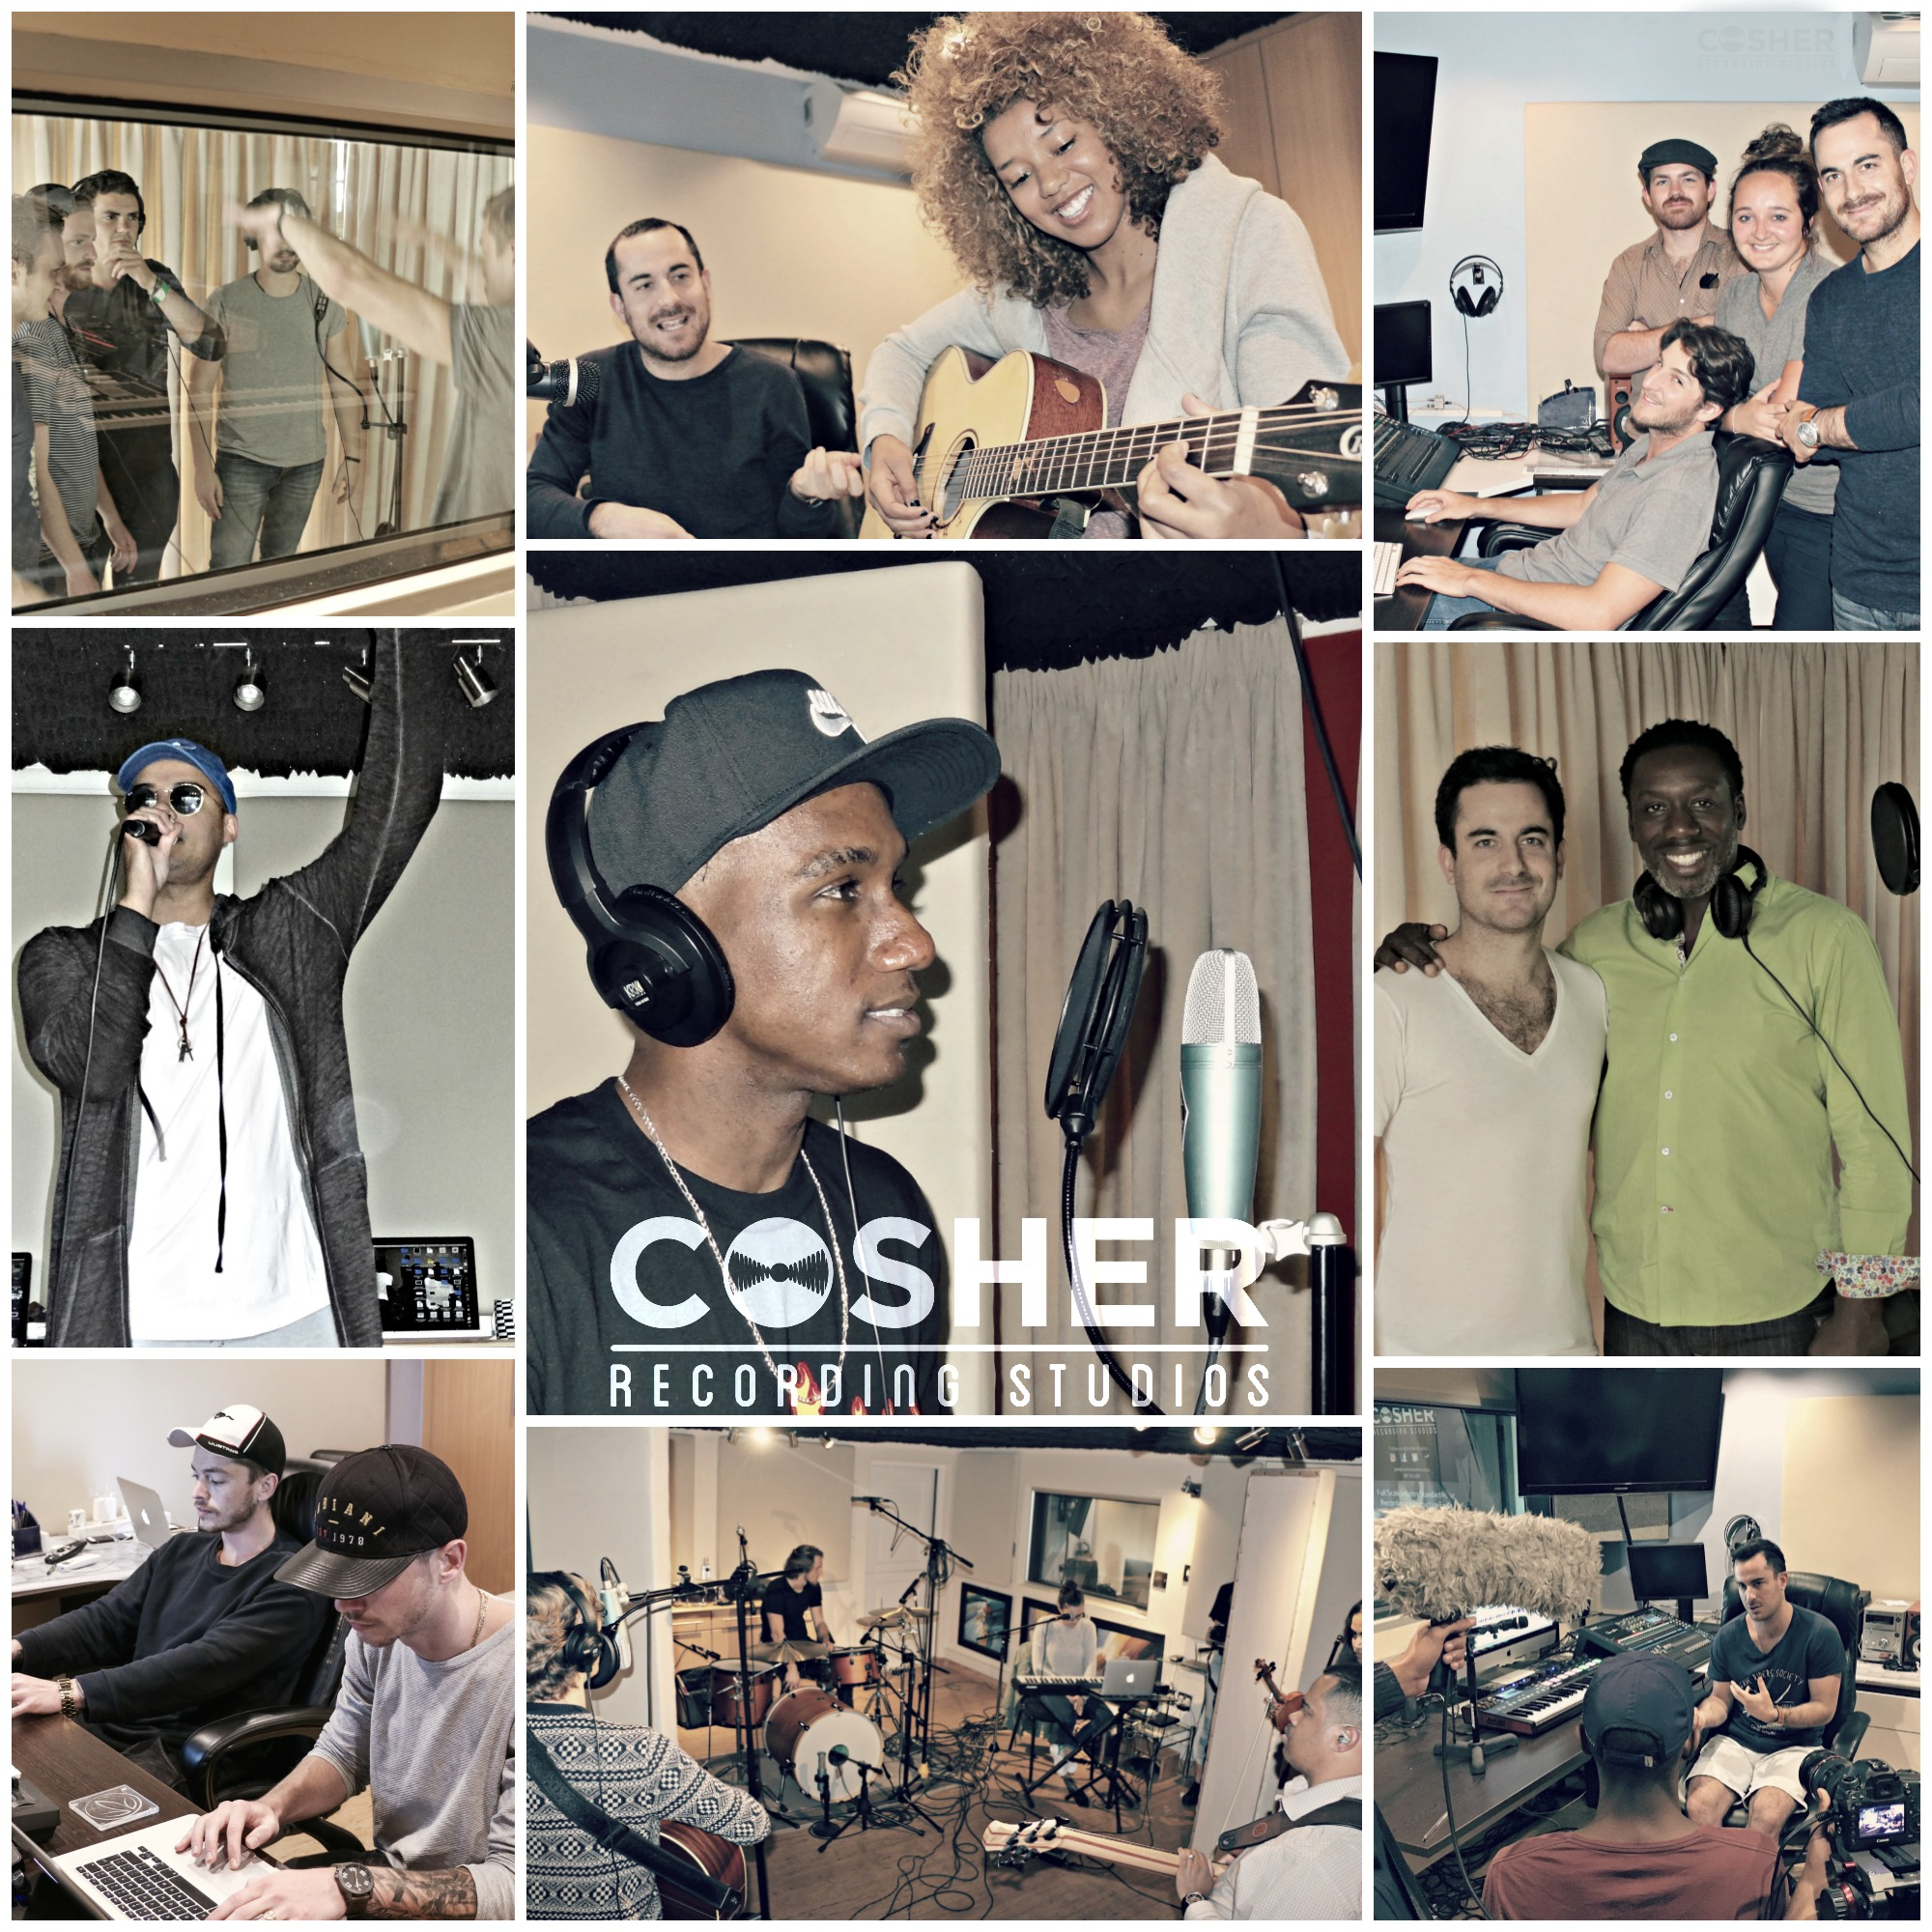 Cosher Recording Studios in 2017